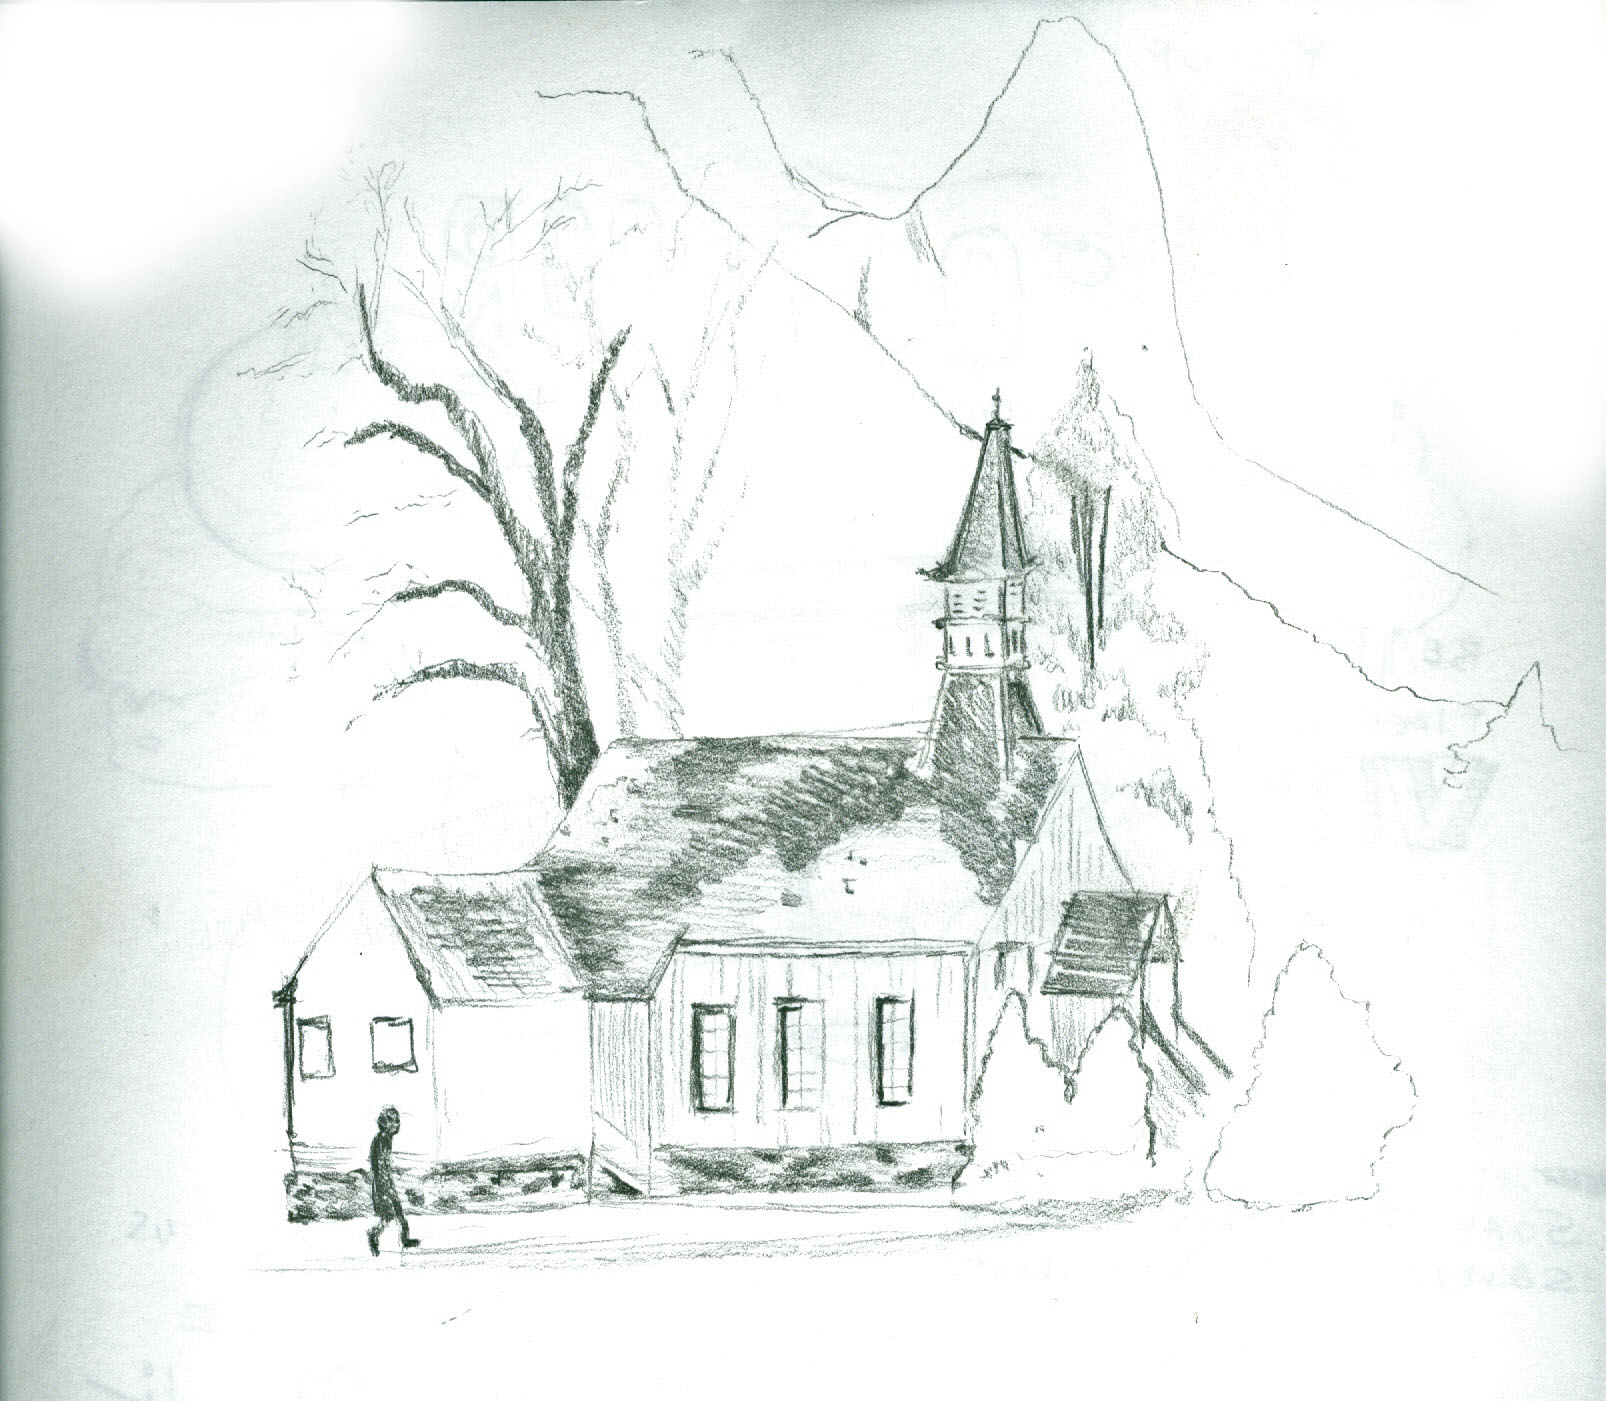 drawing a photograph taken by my grandmother, a Church in Yosemite valley